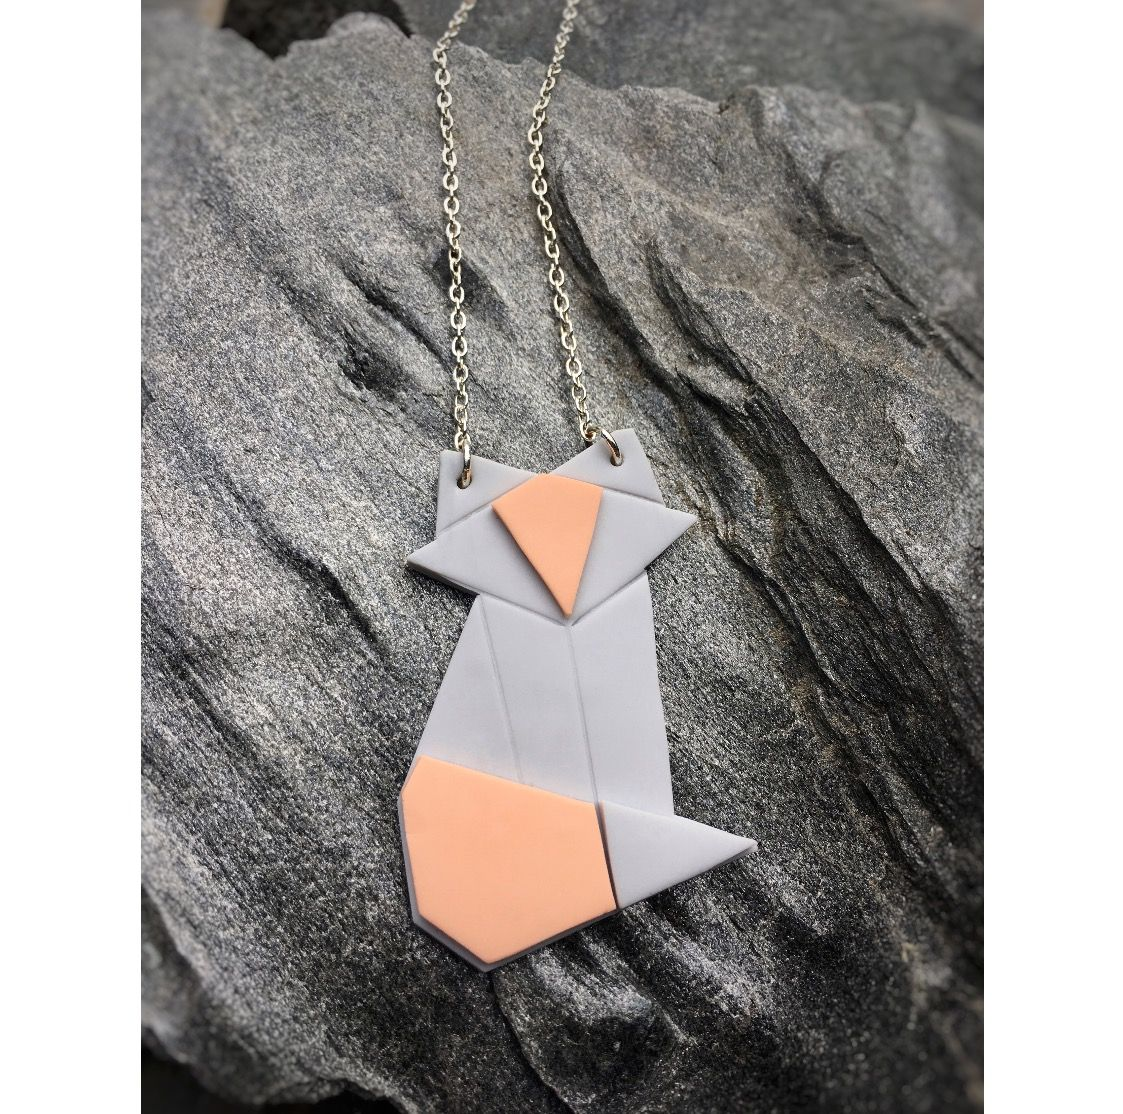 Origami fox necklace Origami kettu kaulakoru   made by CherryAnn Suomalaista käsityötä/ Made in Finland www.madebycherryann.com Instagram @madebycherryann Facebook Made by CherryAnn